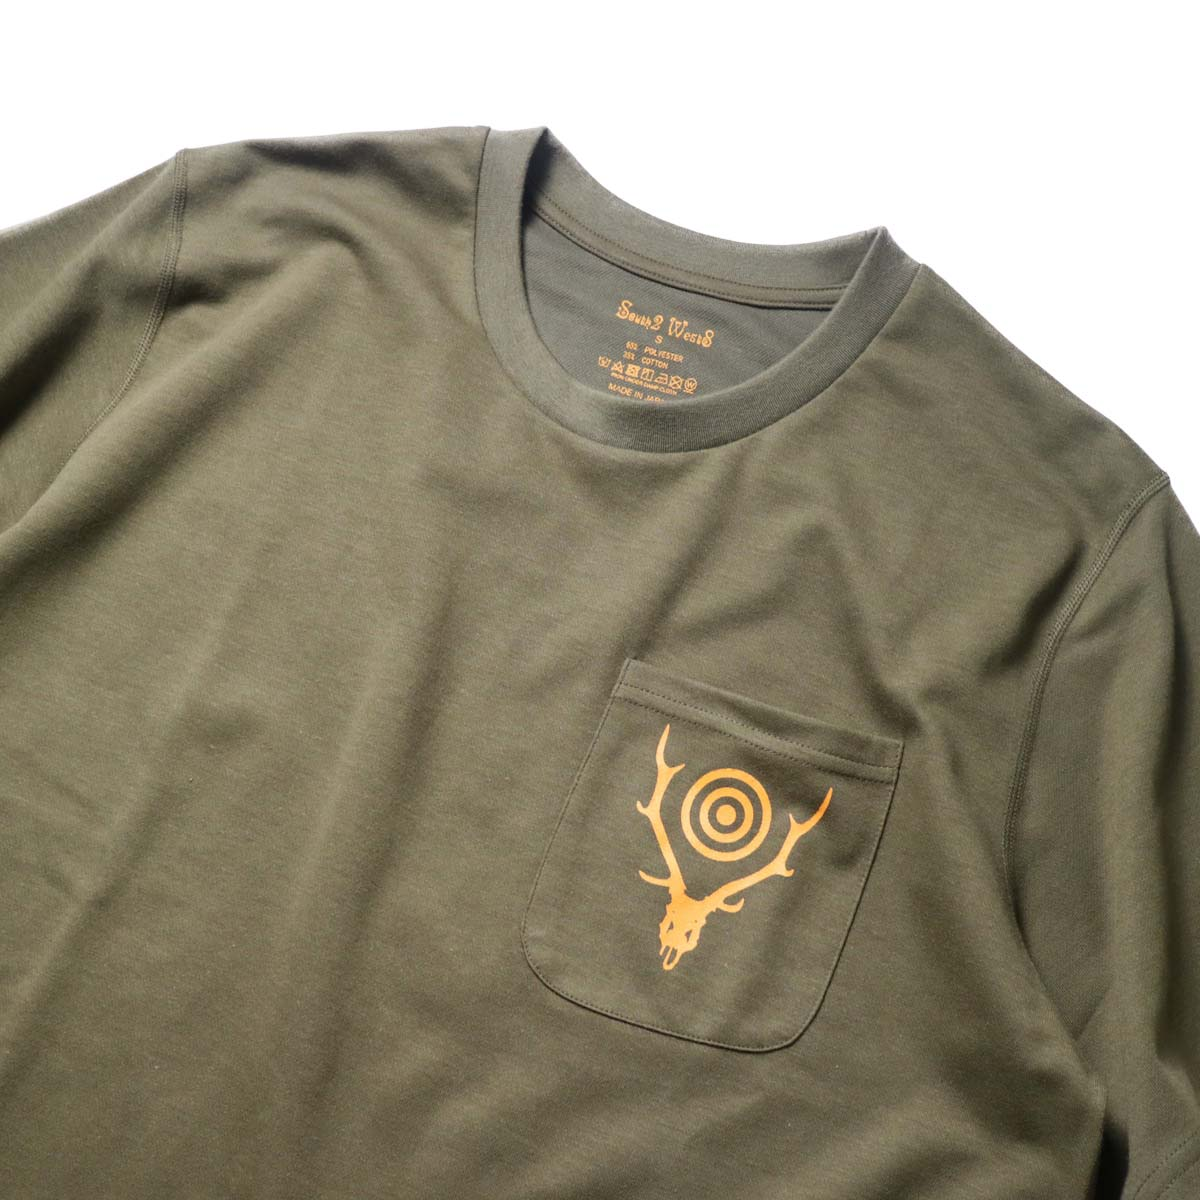 South2 West8 / S/S ROUND POCKET TEE - CIRCLE HORN (Olive)プリント